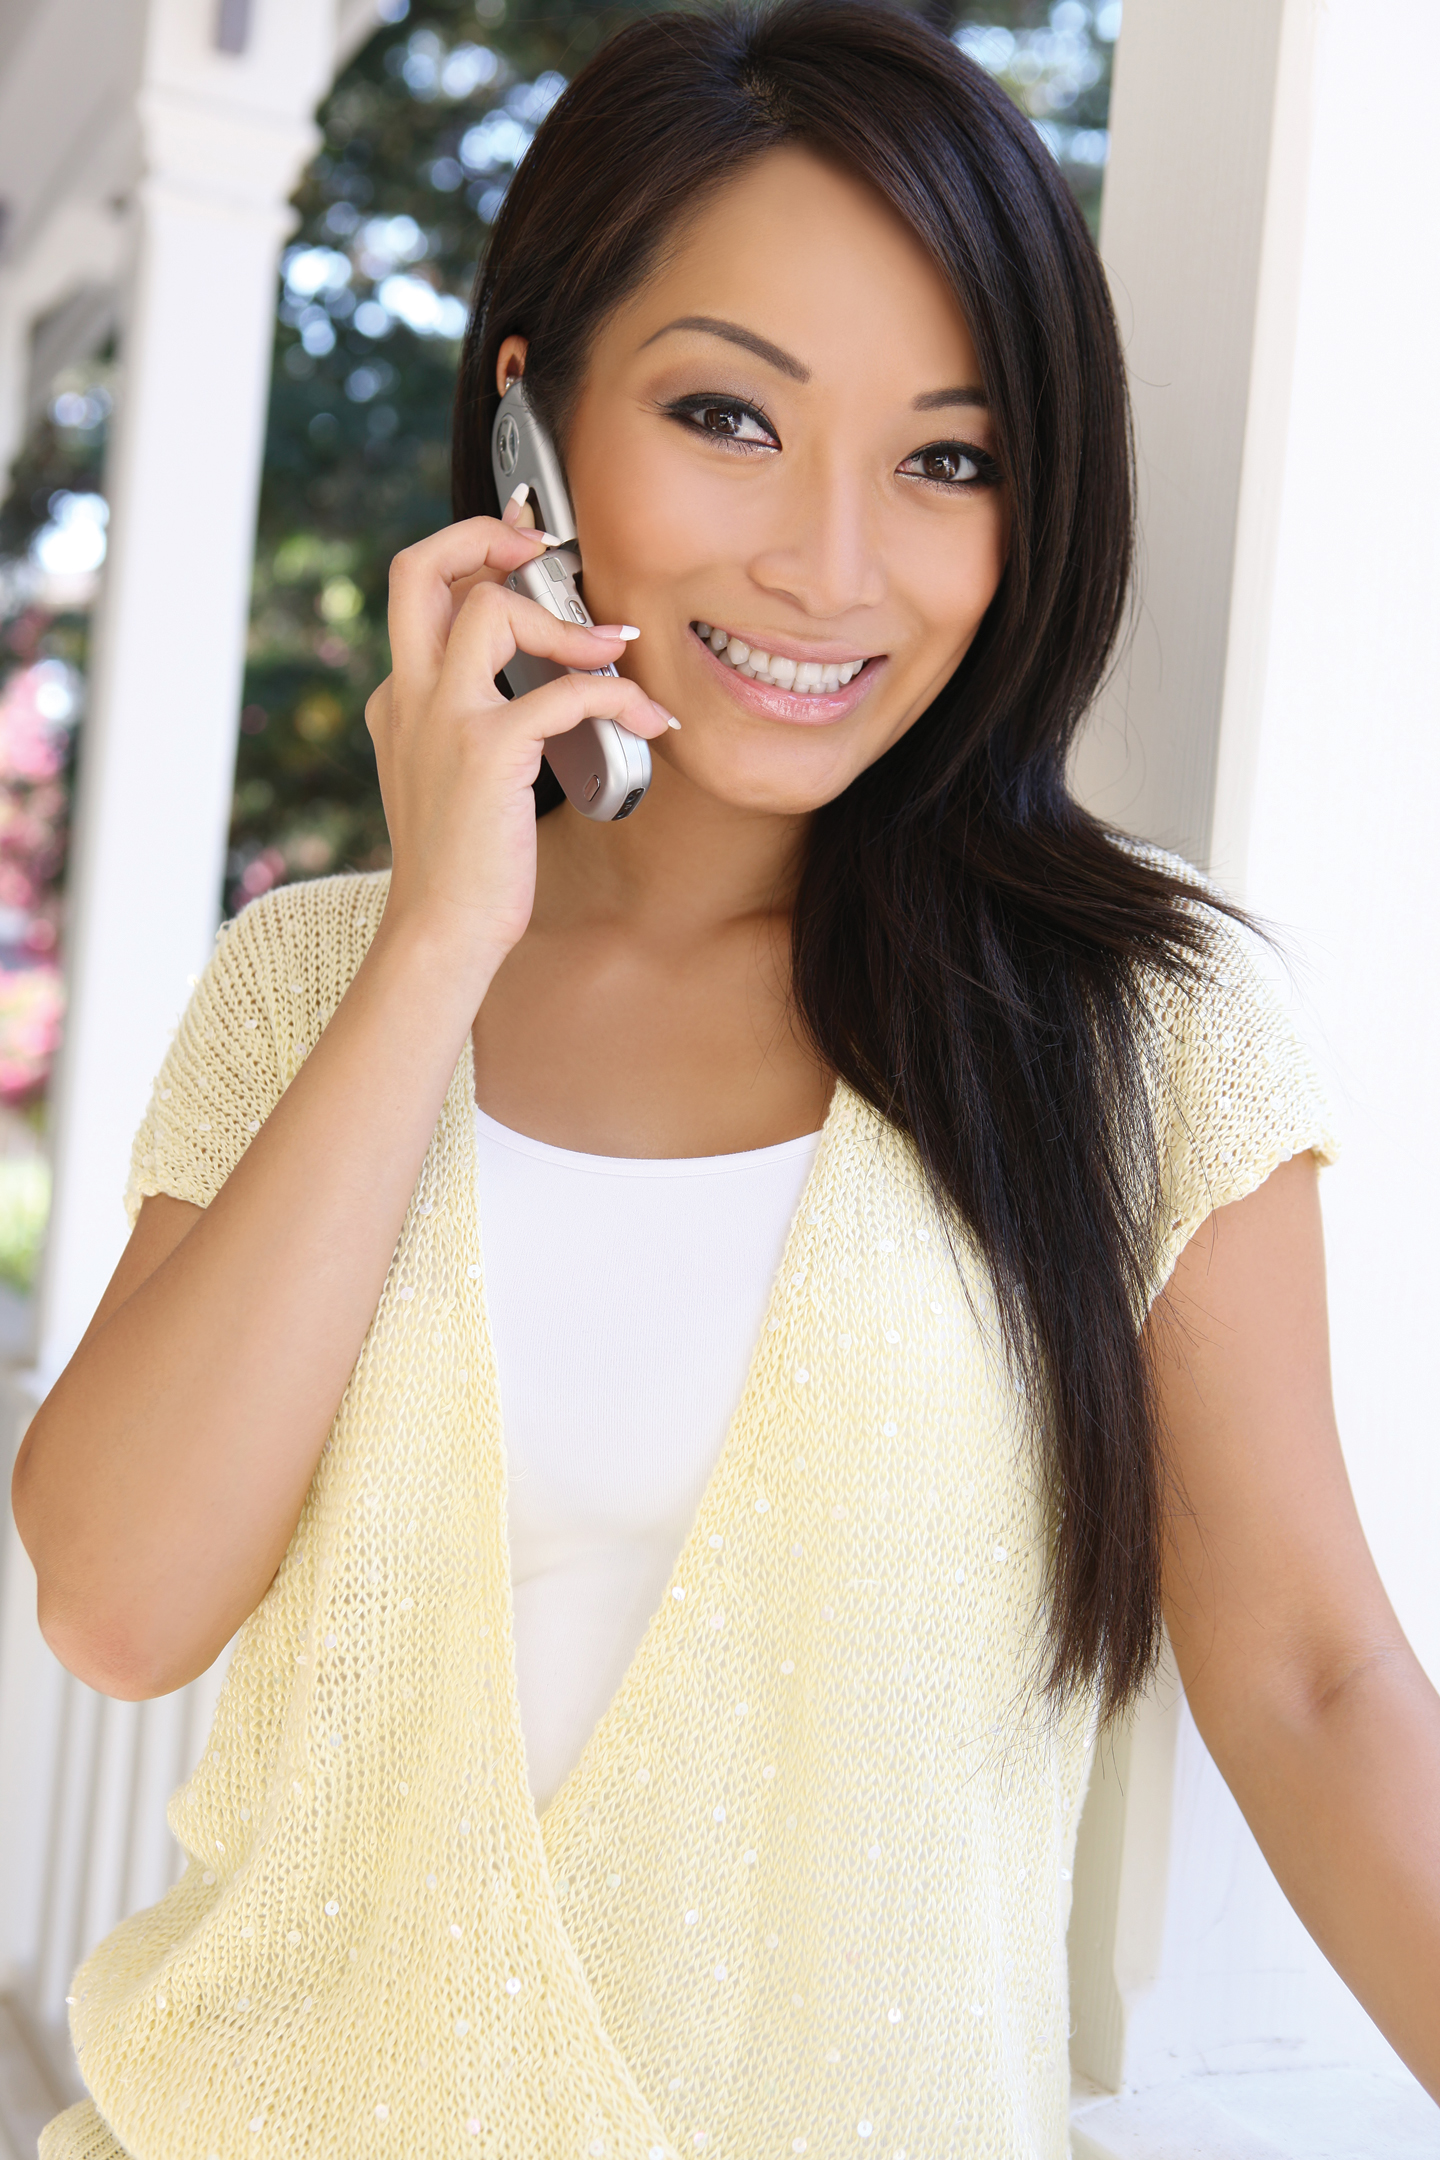 potomac asian personals Virginia classifieds post free ads for apartments, houses for rent, jobs, furniture, appliances, cars, pets and items for sale.